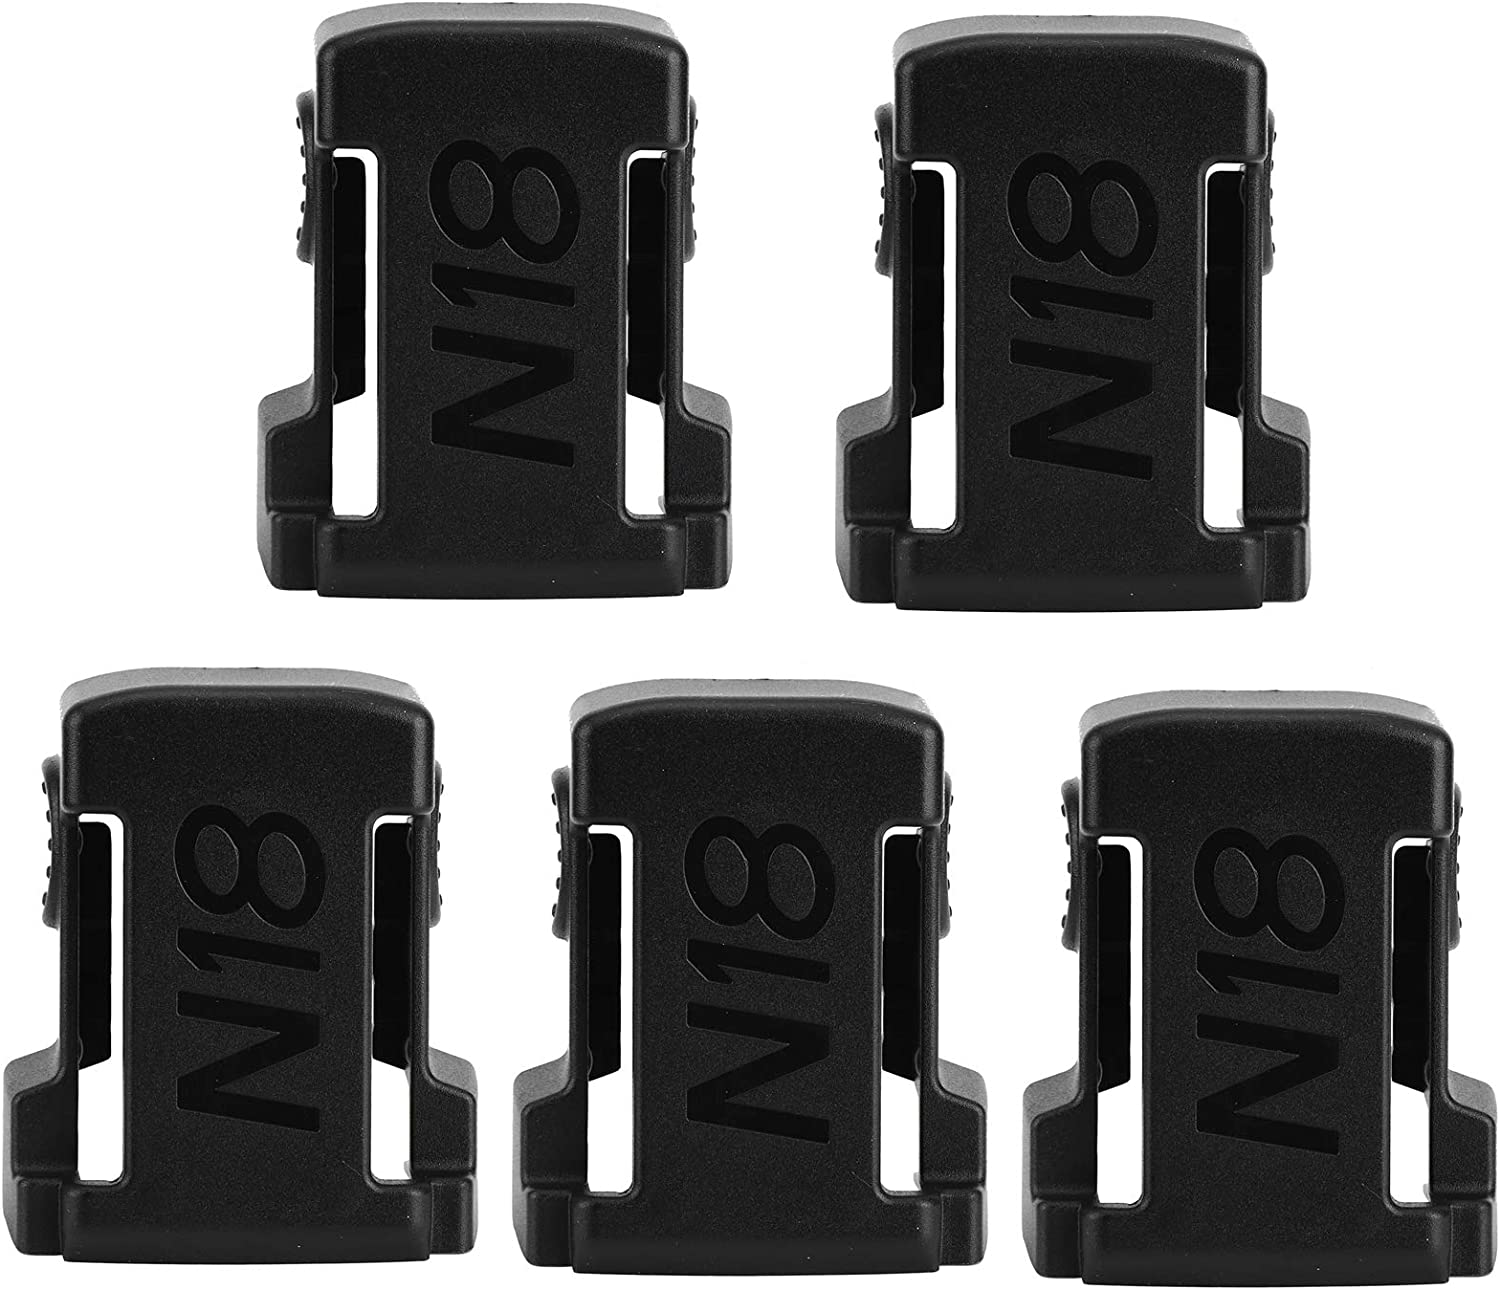 YunDduoBao 5Pcs Battery Mount Limited price sale Holder Rack Accessor Stand Free shipping New